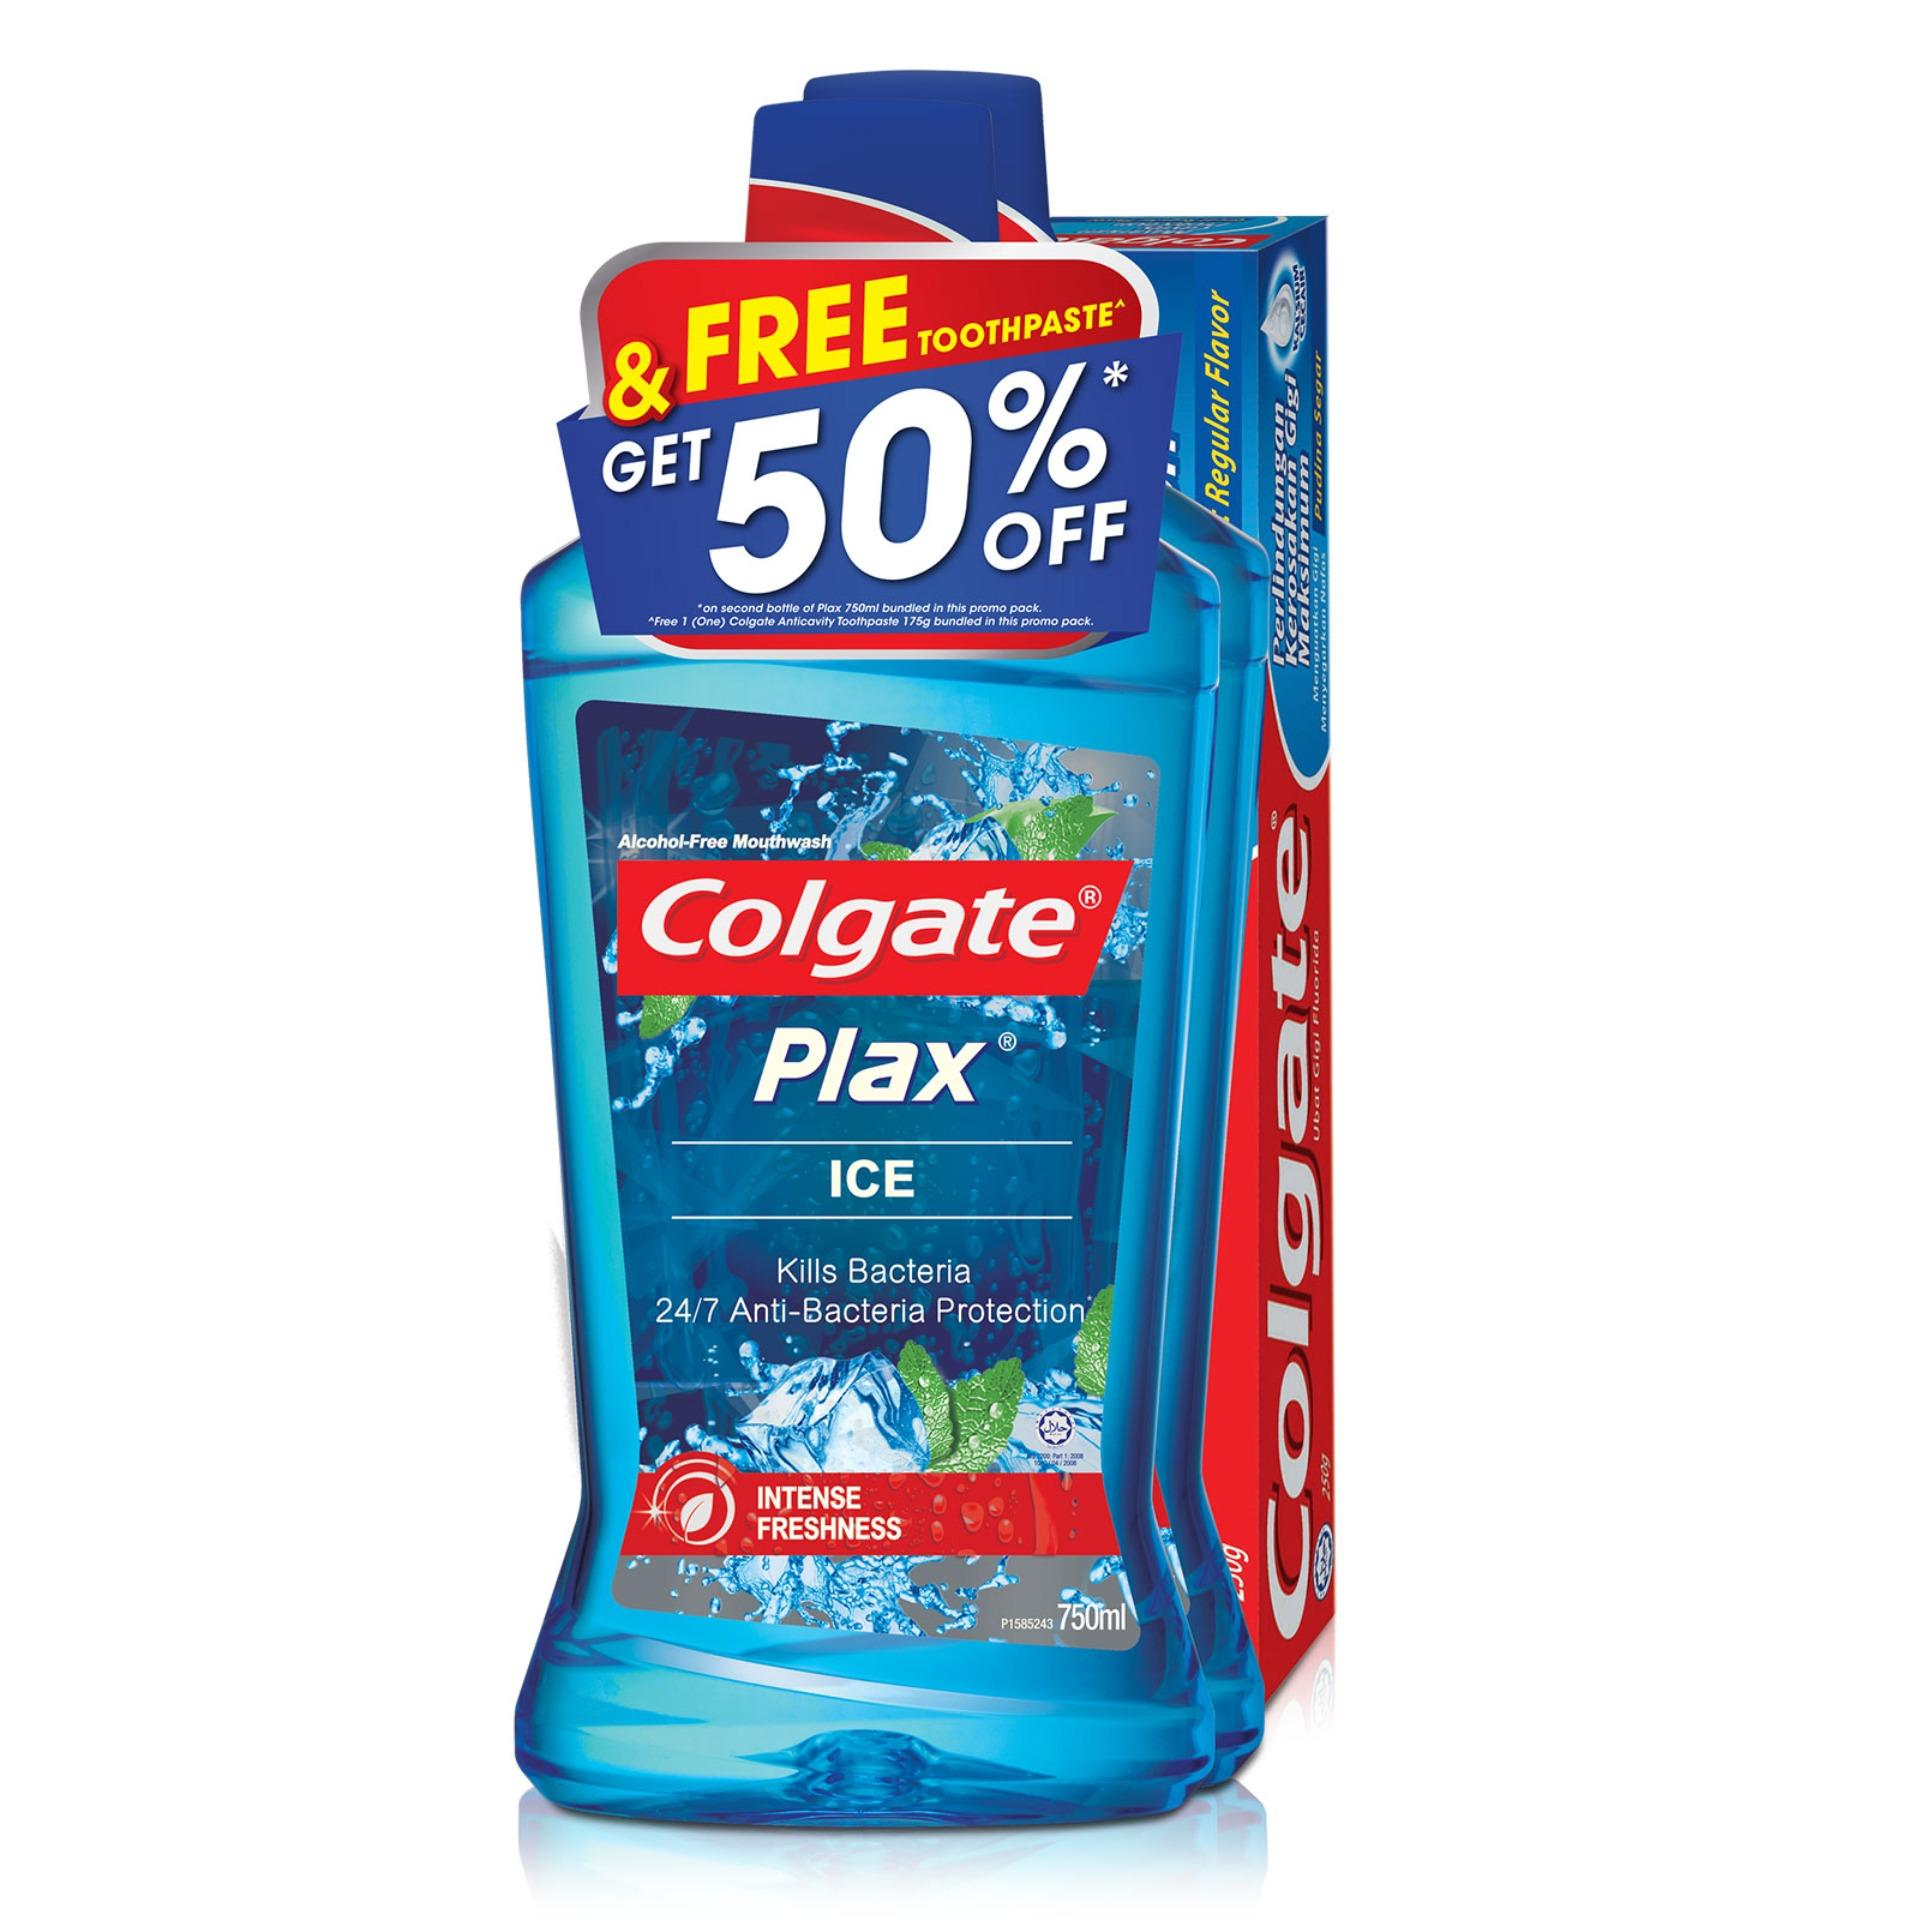 Review Colgate Plax Ice Mouthwash 750Ml Twinpack Free Colgate 175G Toothpaste Singapore